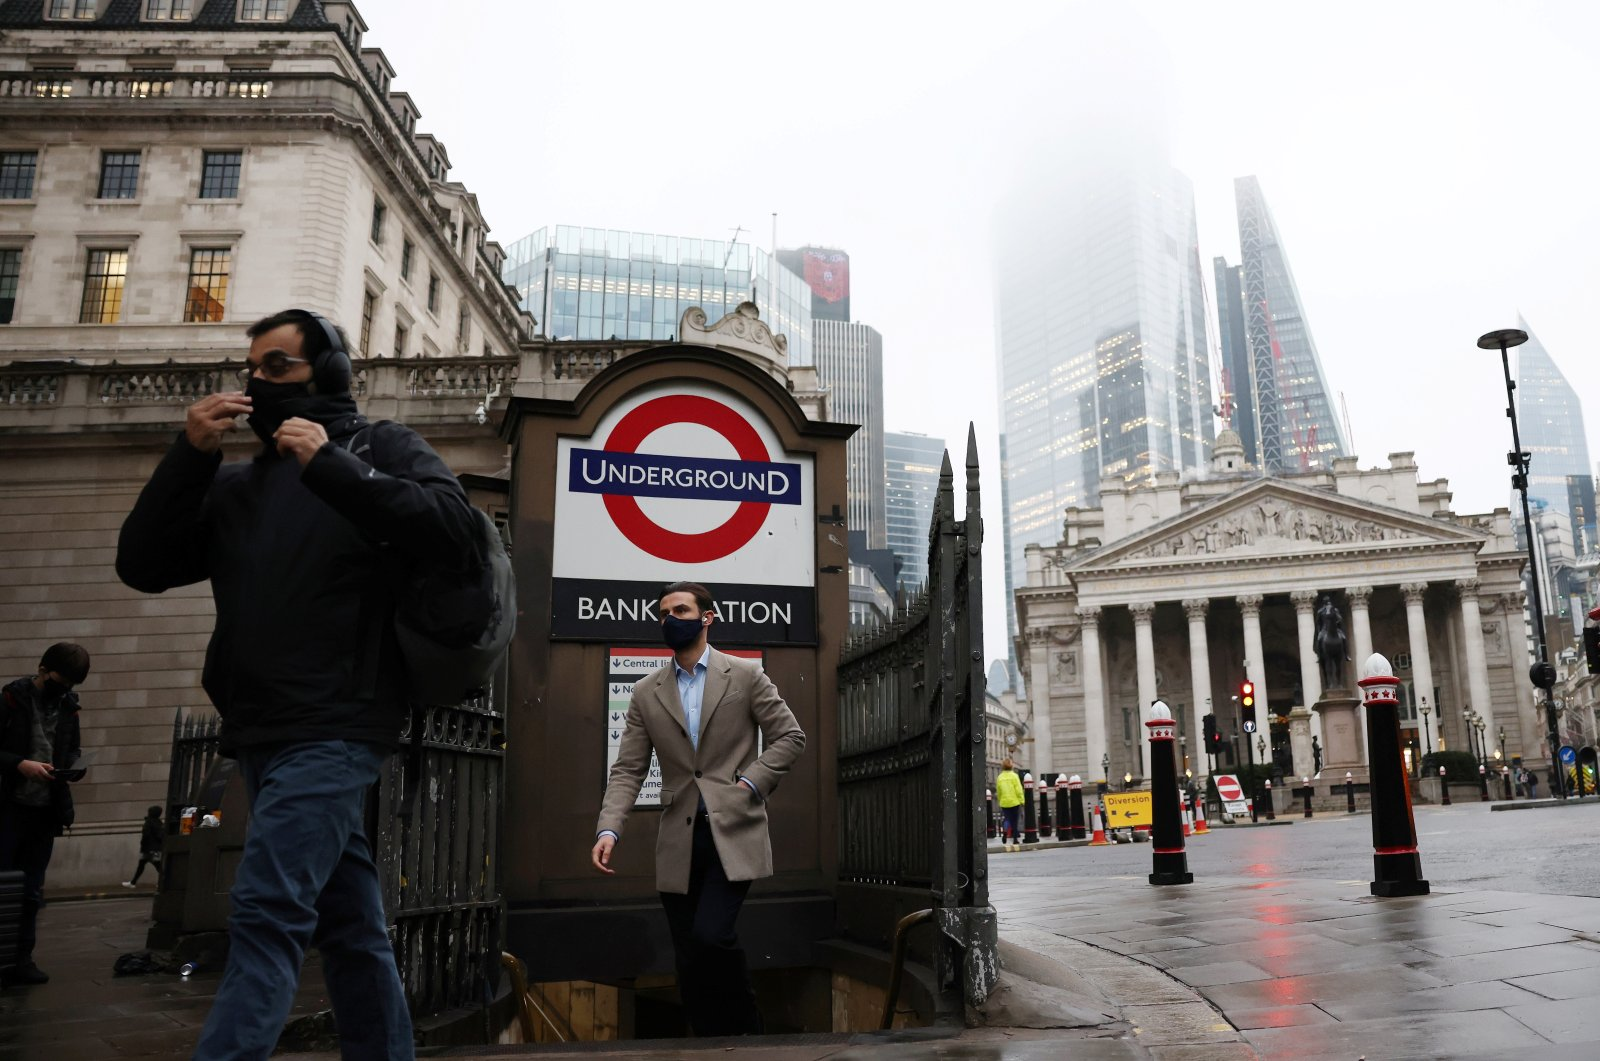 People exit Bank station in the City of London financial district, amid the coronavirus outbreak, in London, Britain, March 4, 2021. (Reuters Photo)